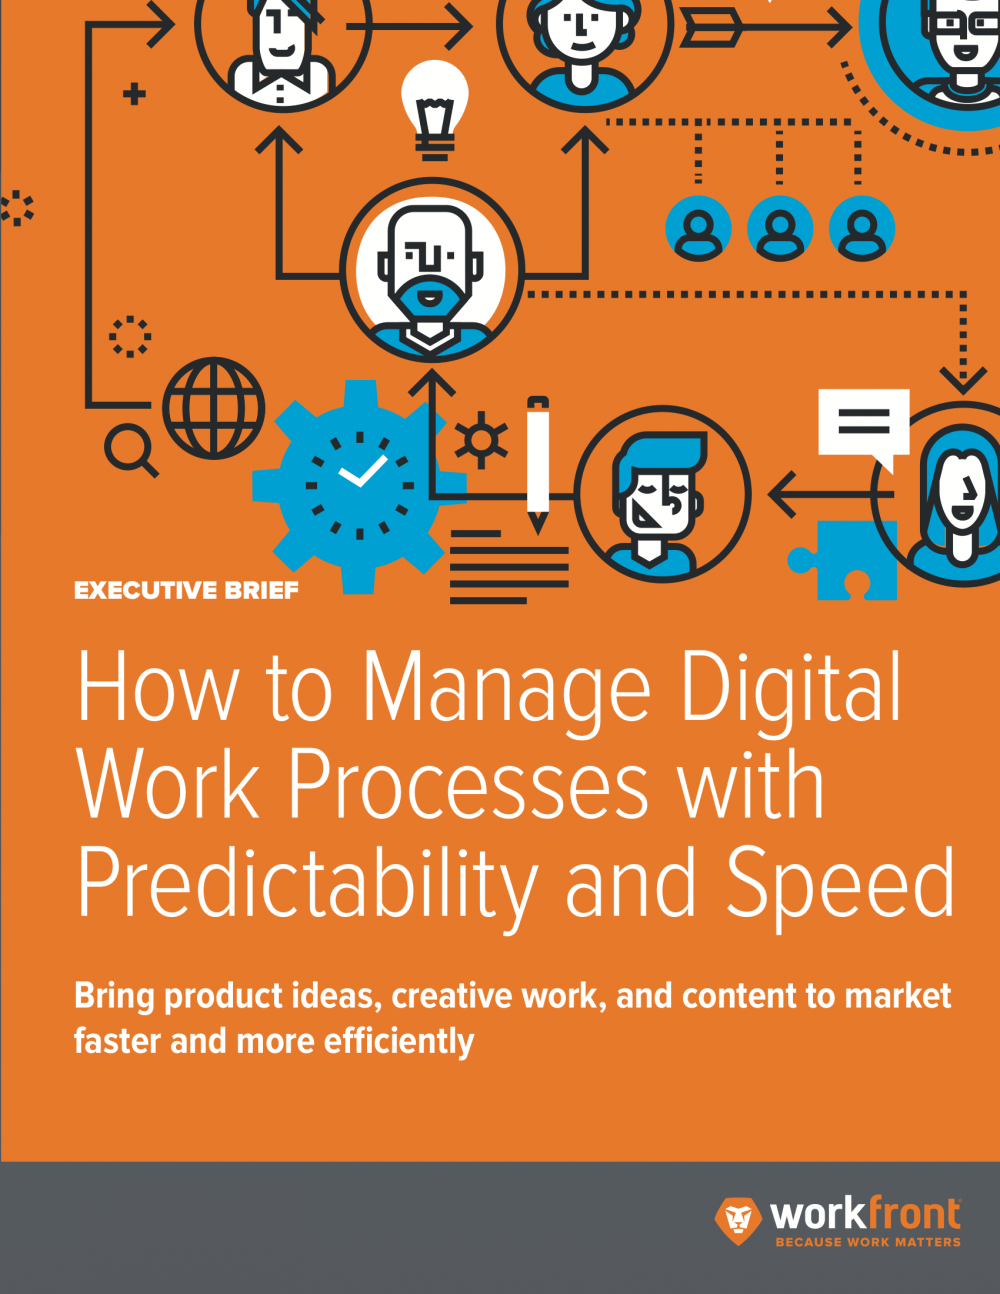 How to Manage Digital Work Processes with Predictability and Speed